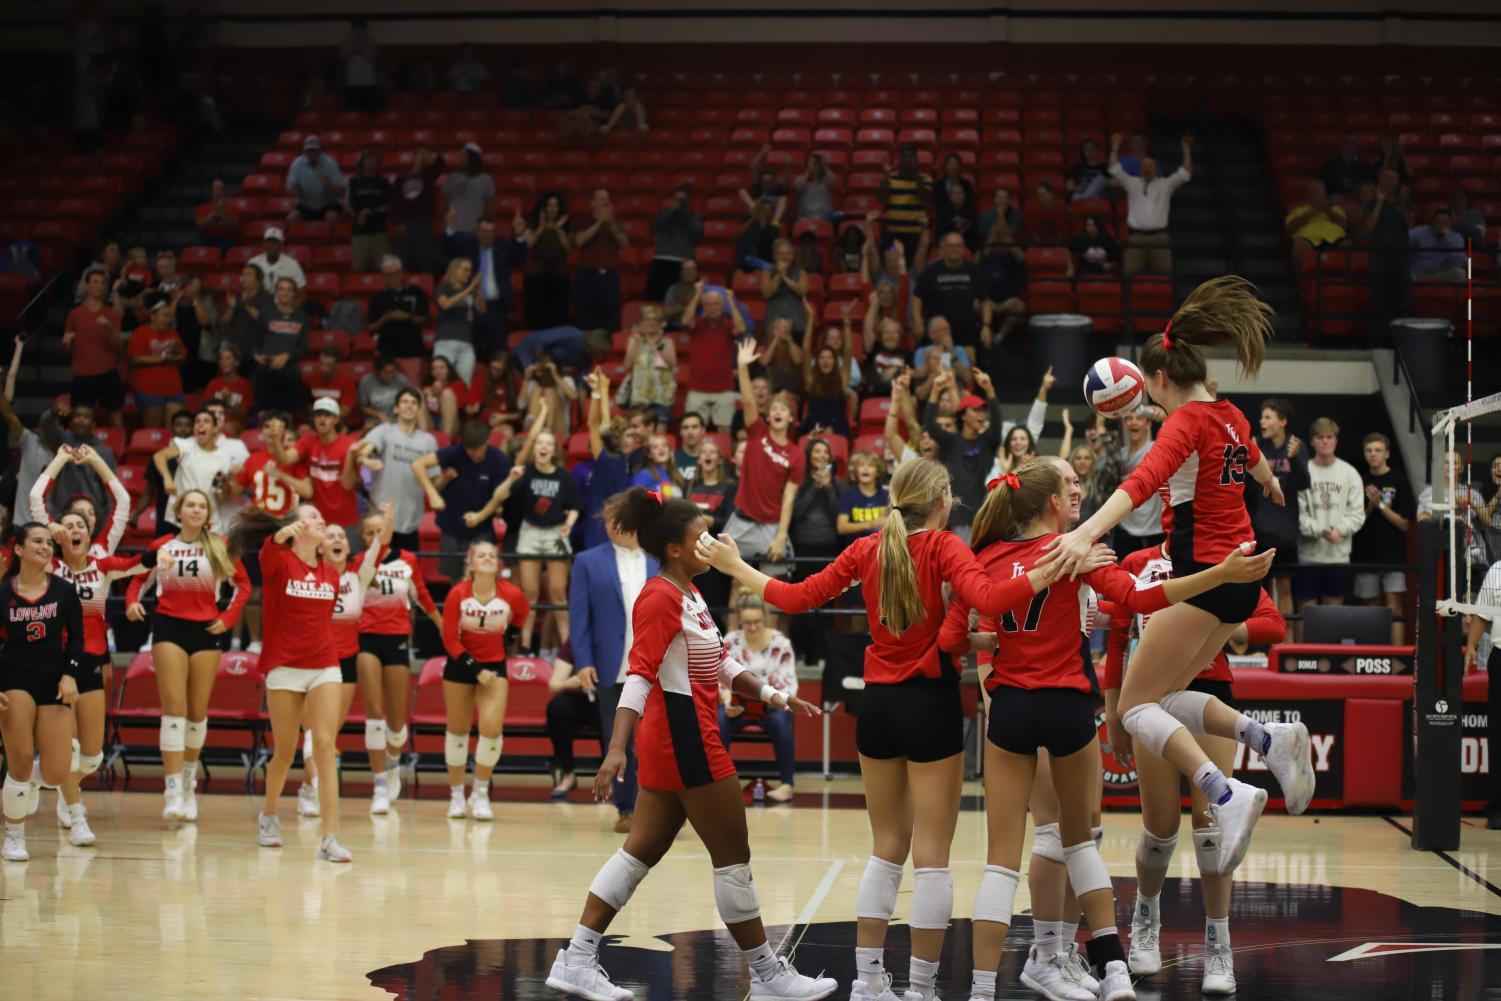 The+Leopards+celebrated+after+a+three-set+sweep+against+Mckinney+Boyd.+On+Friday%2C+they+will+play+Sasche+in+a+non-conference+match.